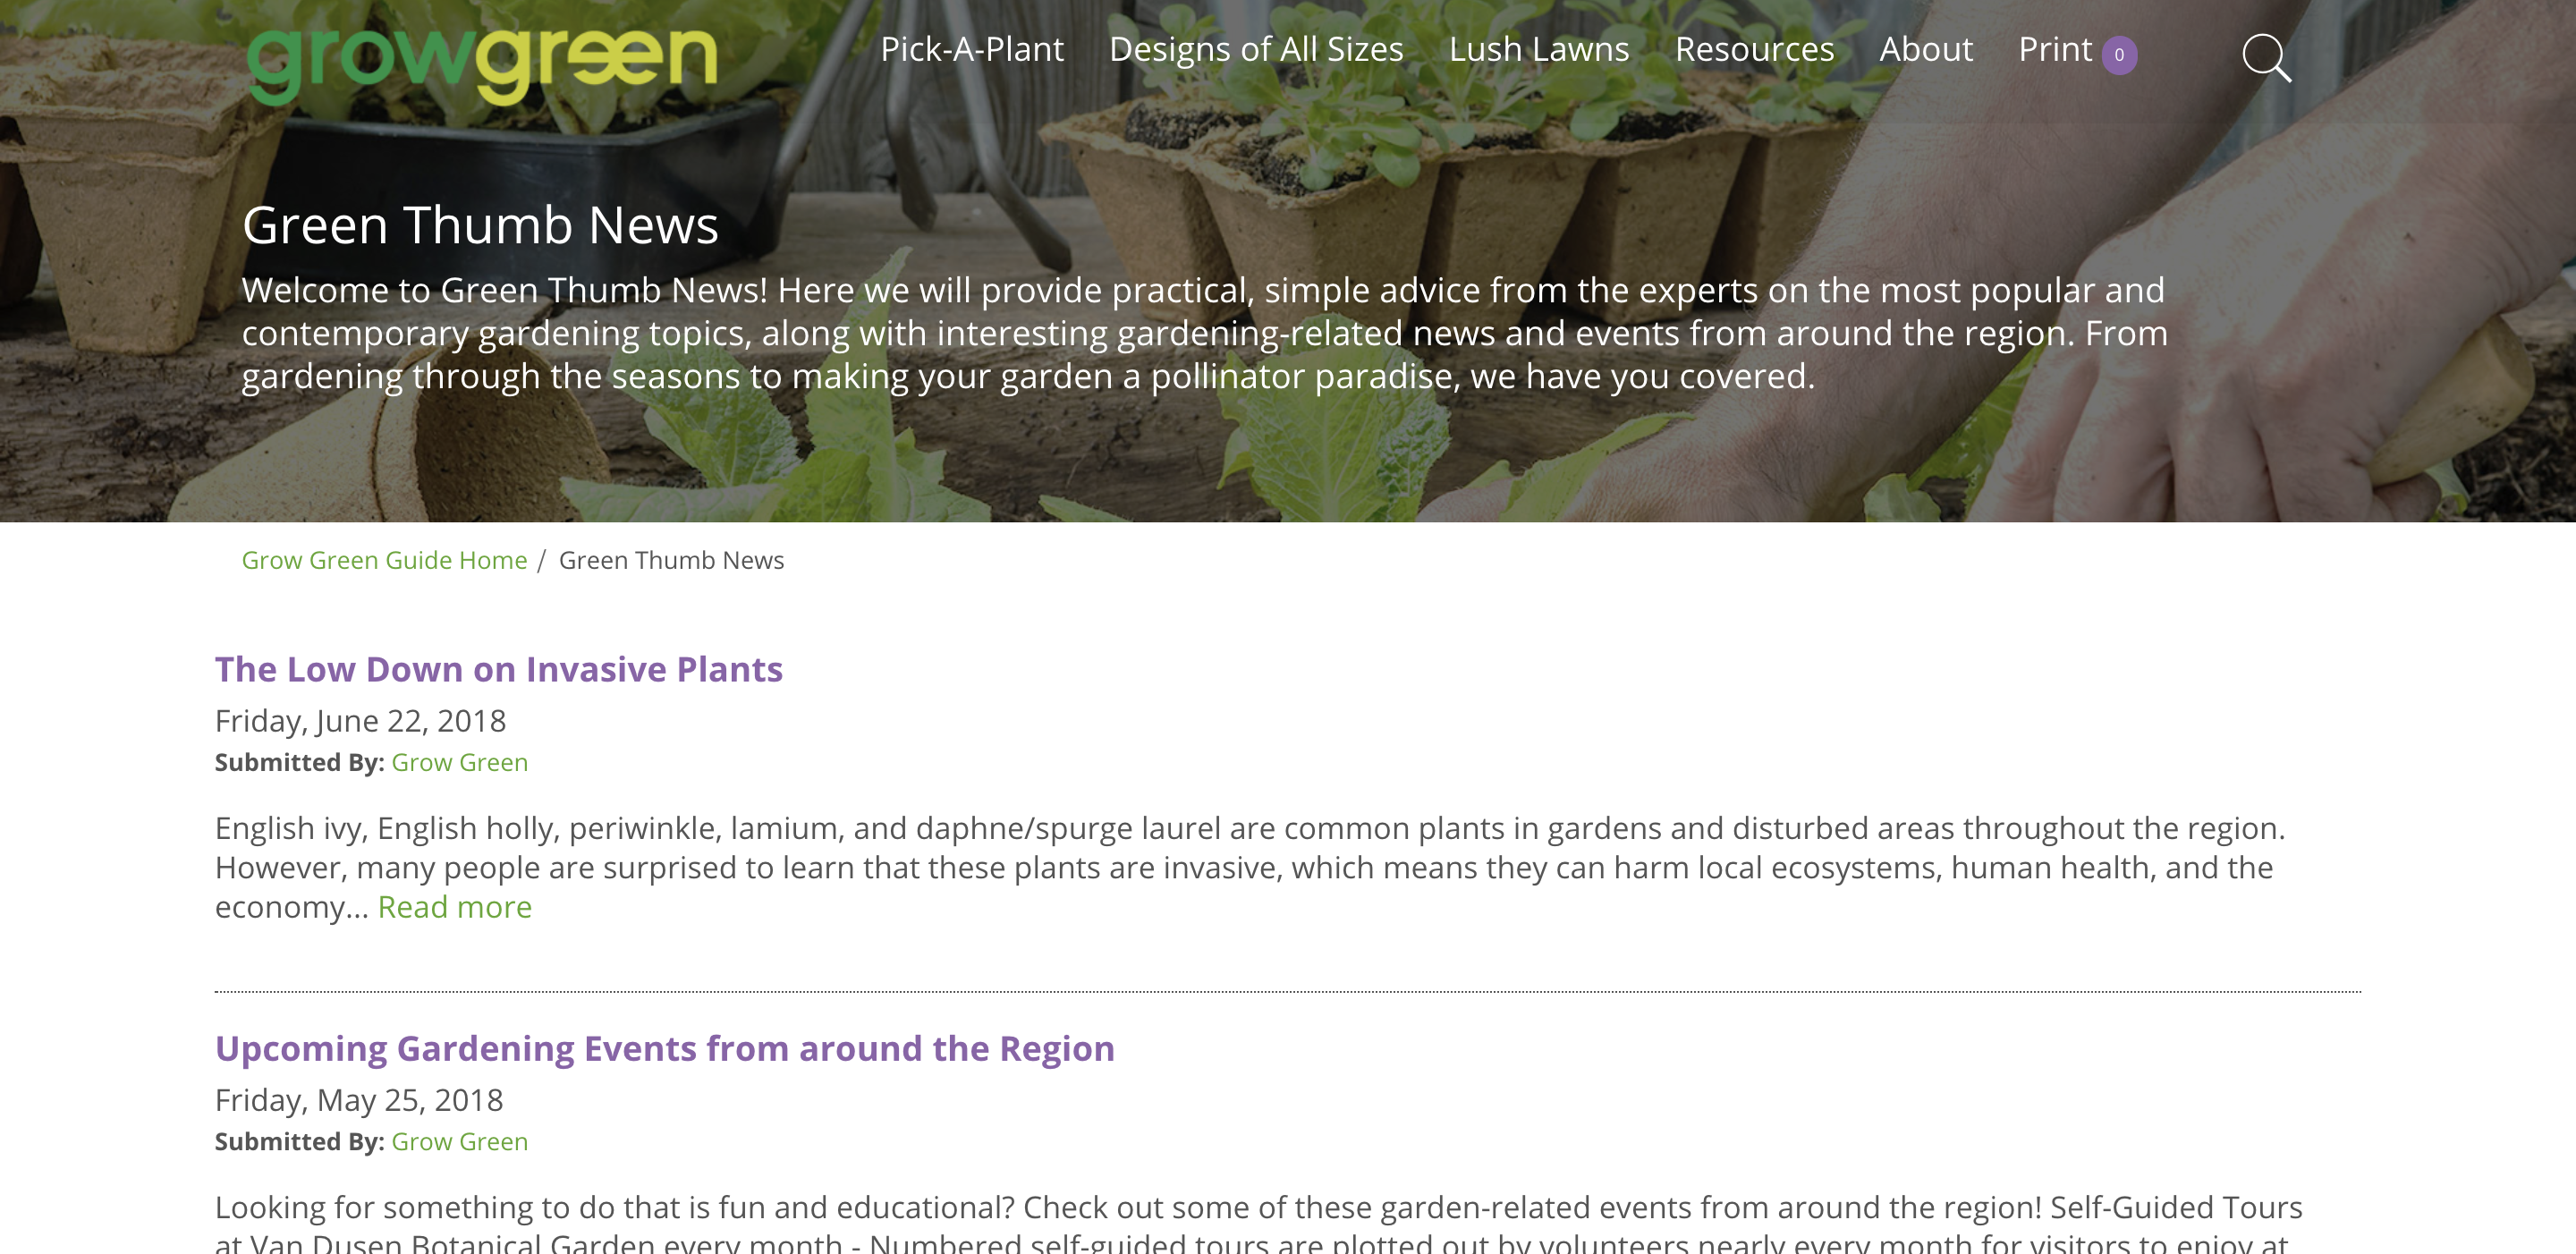 The Green Thumb News blog